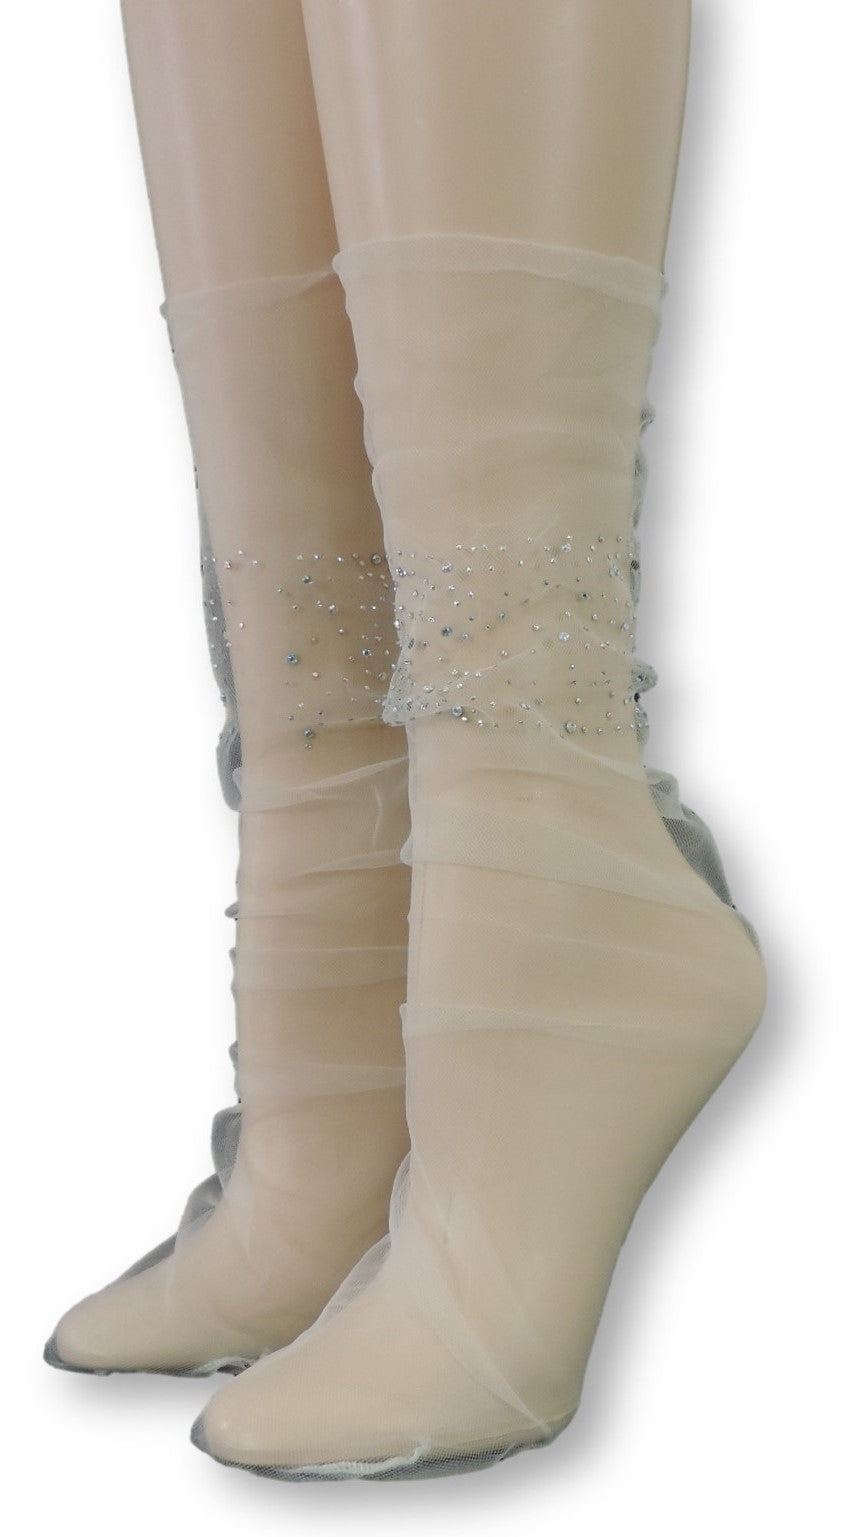 Stylish Tulle Socks with Crystals